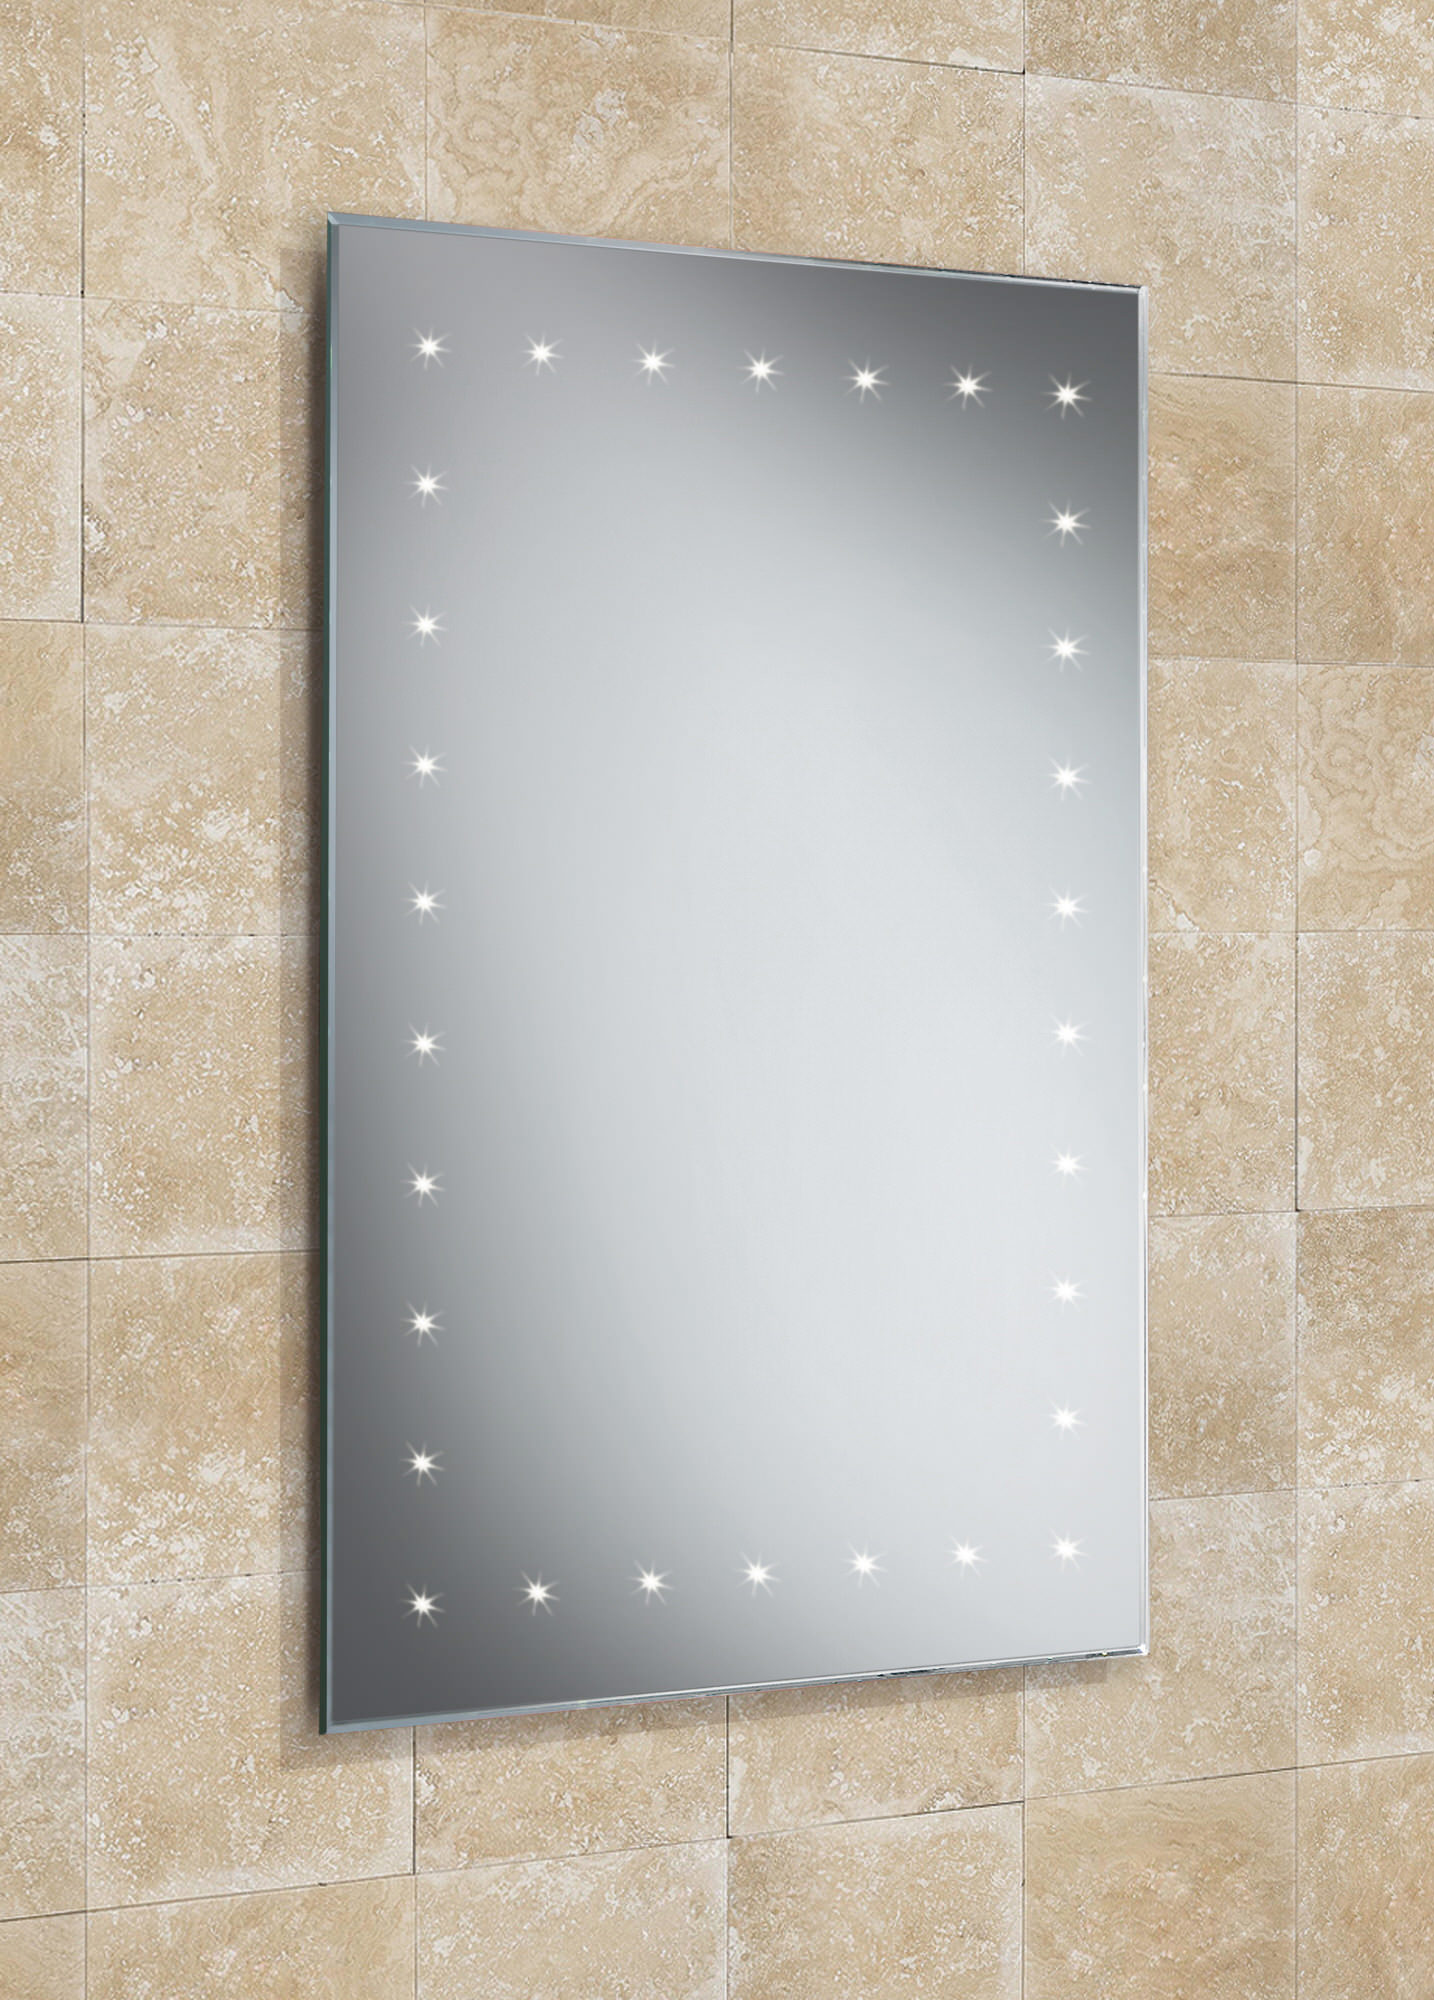 HIB Solar Bevelled Edge Bathroom Mirror With LED Border 500 X 720mm